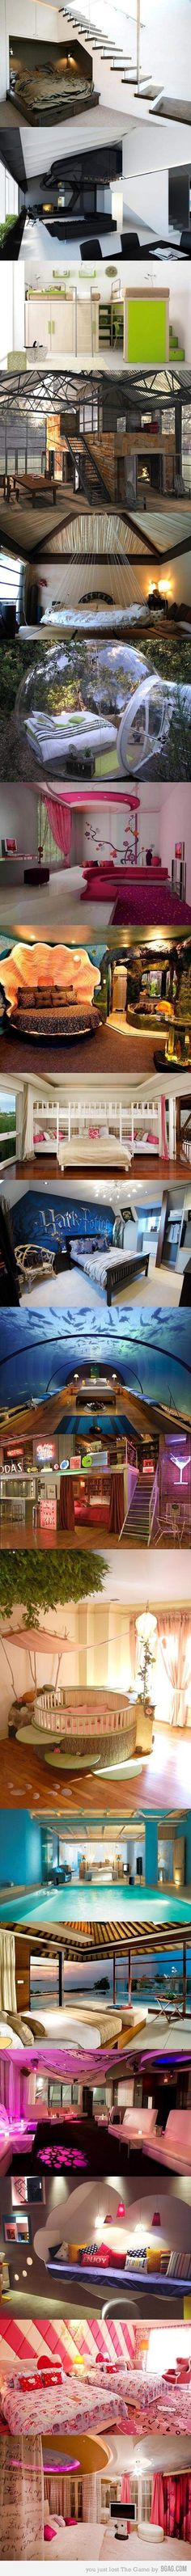 Different Types of Kids Rooms